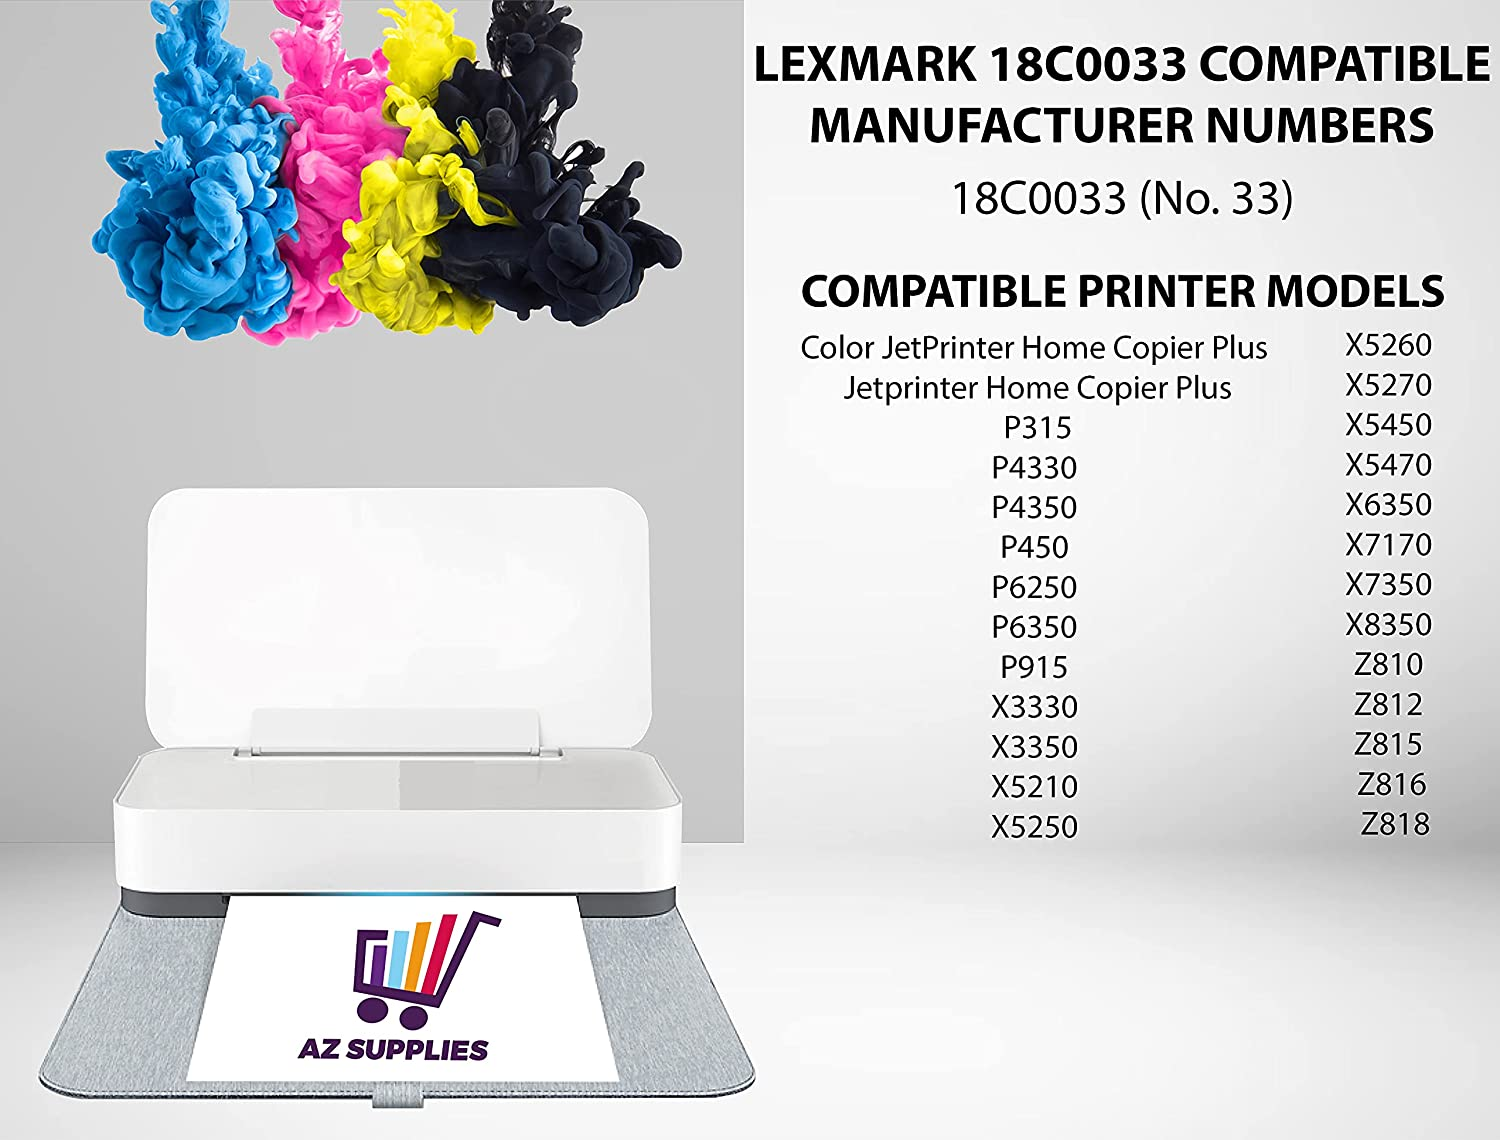 AZ Supplies Compatible Inkjet Replacement for Lexmark 18C0033 (No. 33) use in Color JetPrinter Home Copier Plus P315 P4330 P6250 P6350 X3350 X5250 X5270 X5470 X6350 X7170 Z816 Z818 (Color - 2 Pack)